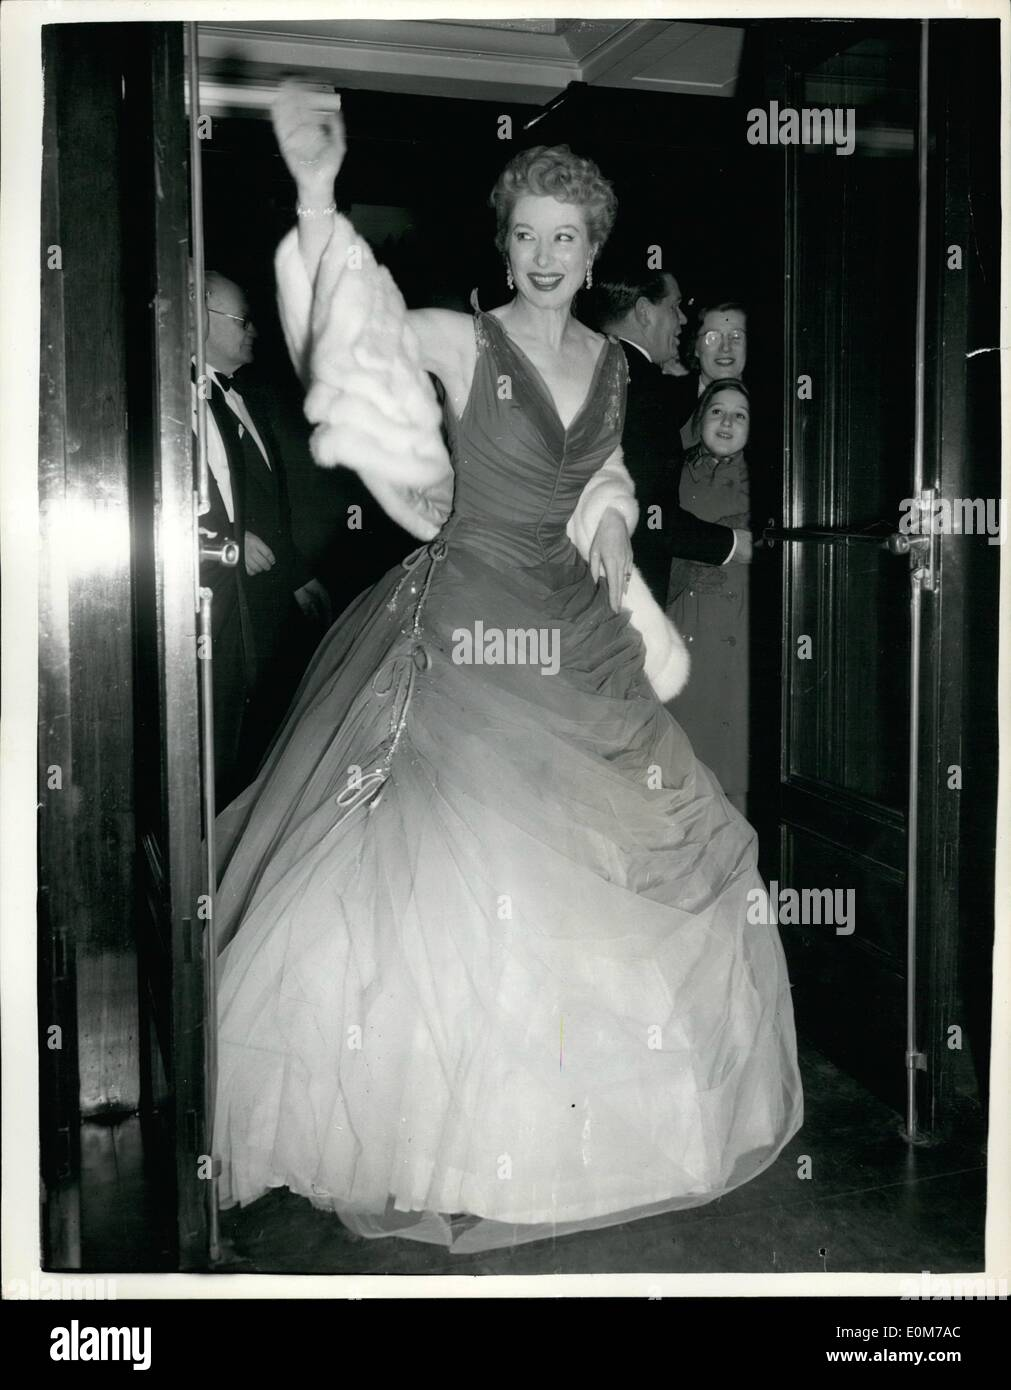 Nov. 11, 1953 - Last Night's Premiere of the Film - ''Julius Caesar'' at the Carlton Cinema Haymarket - Photo Shows - Miss Greer garson, One of the Sters of the Film, Waves to the Cheering crows when she arrived for the Premiere last night. - Stock Image